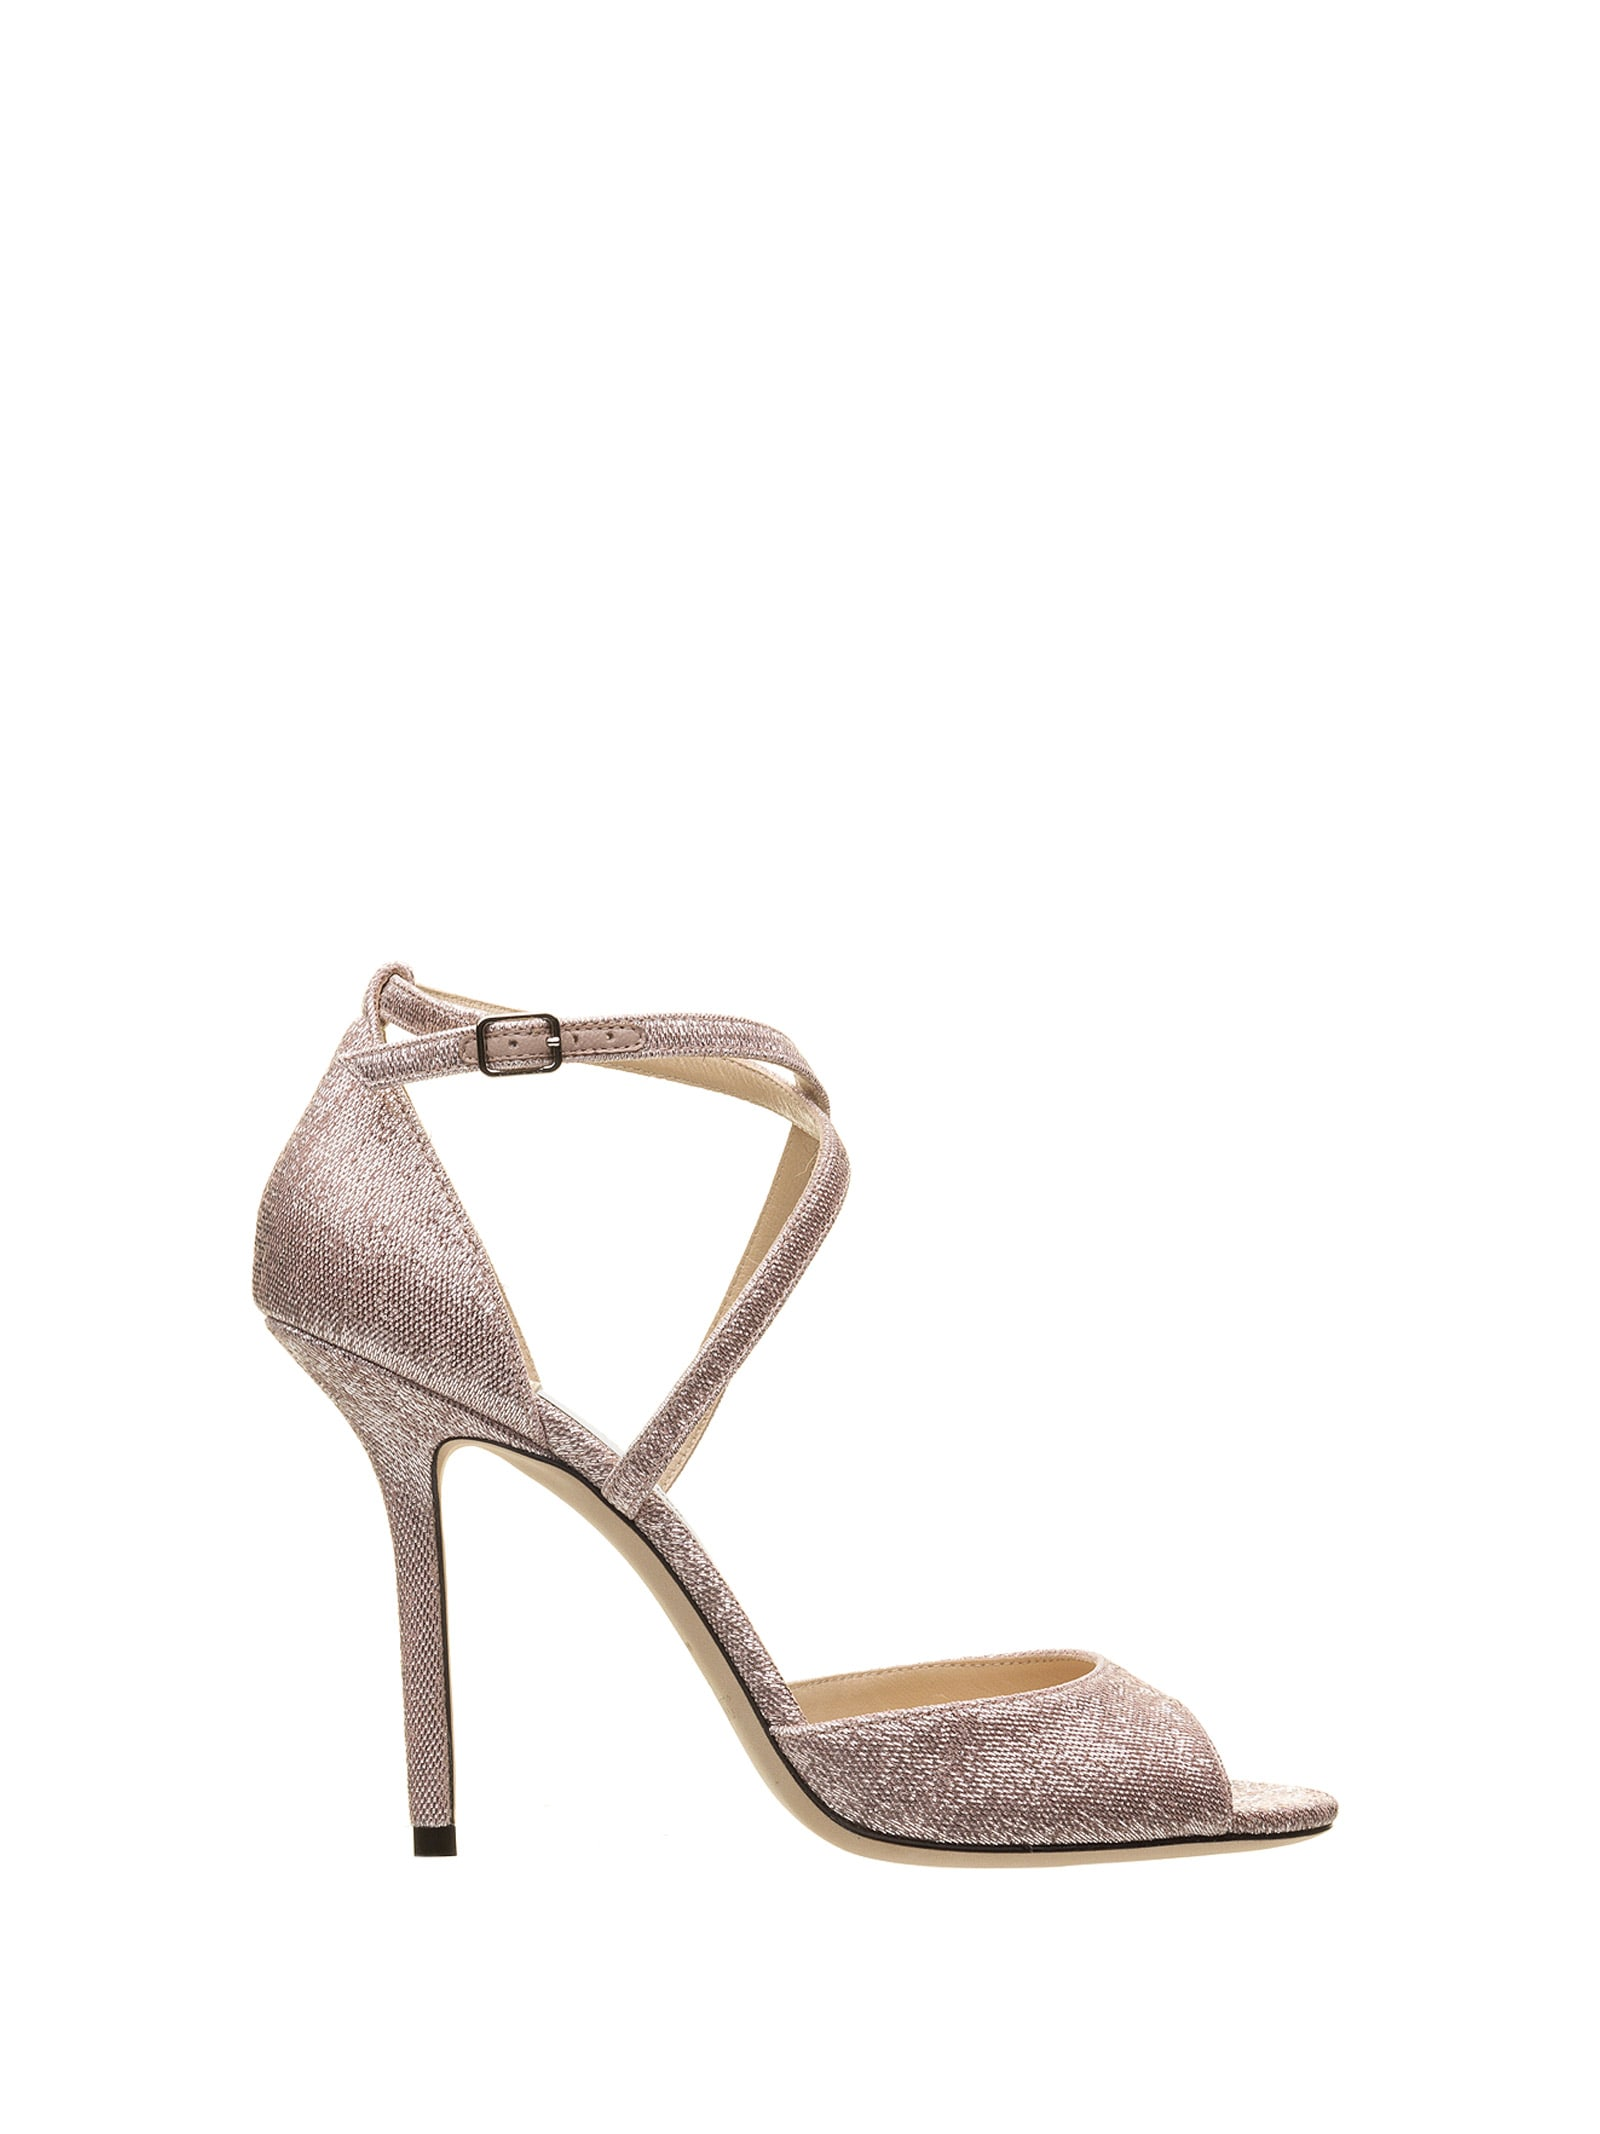 Jimmy Choo Jimmy Choo Emsy Metallic Fabric Sandals